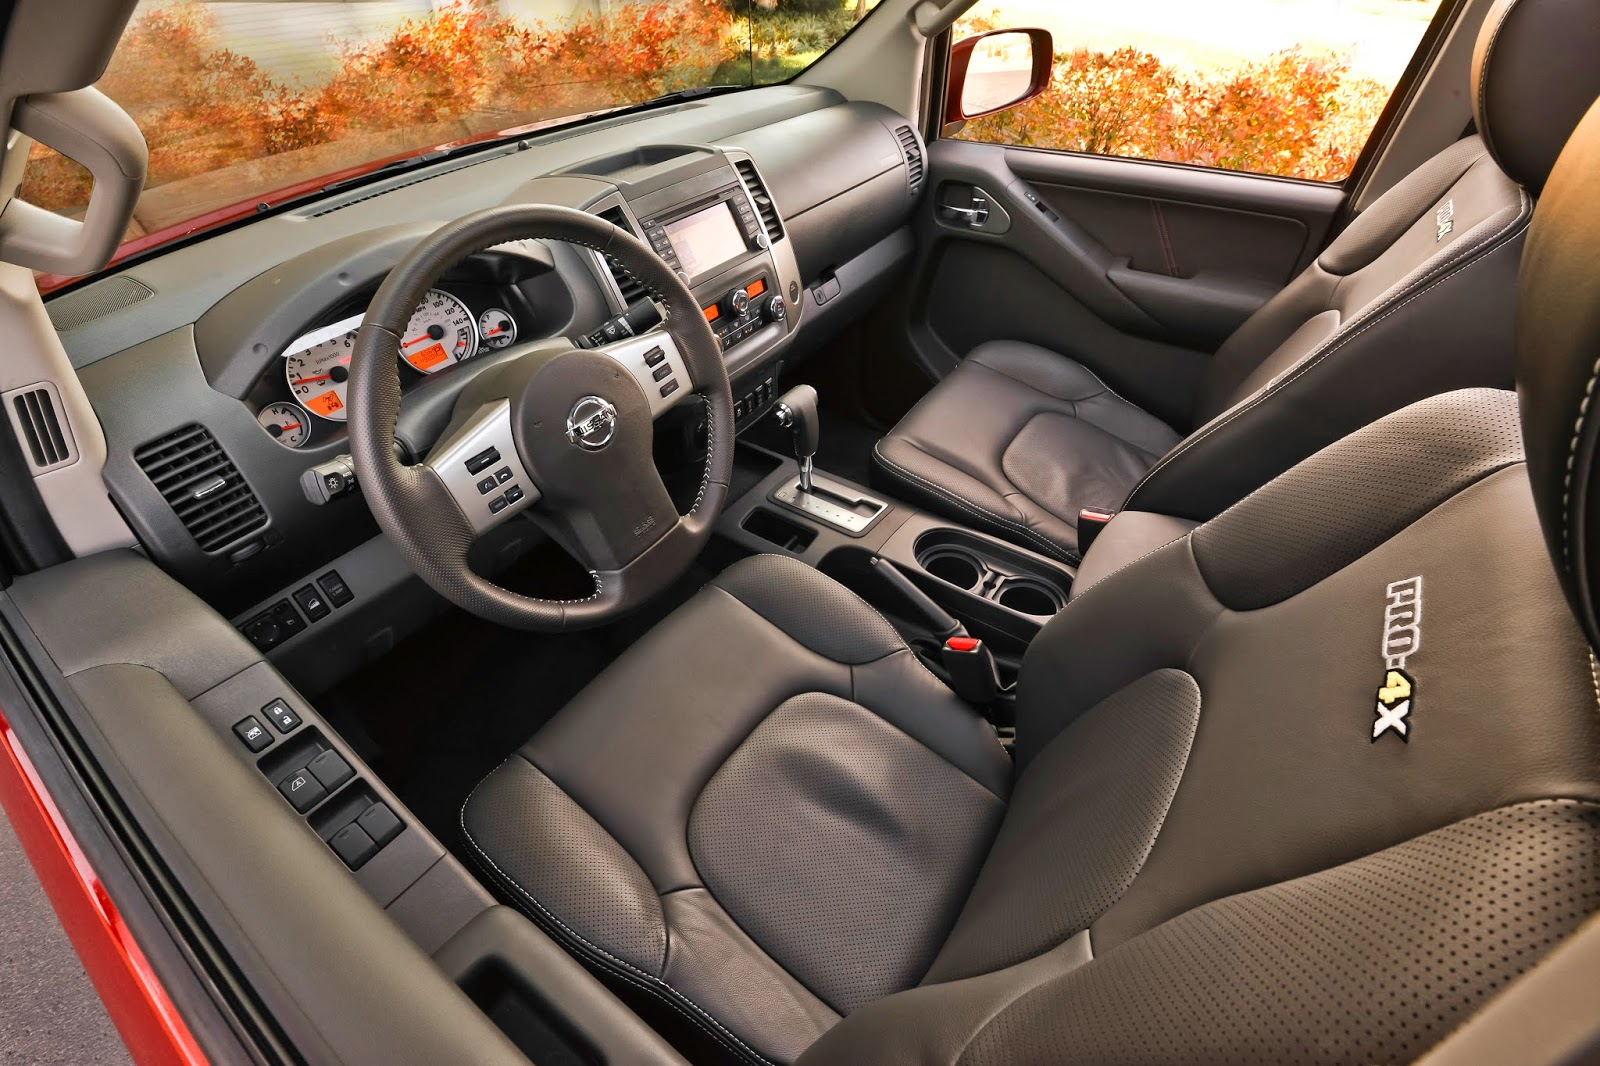 Interior view of 2014 Nissan Frontier PRO-4X